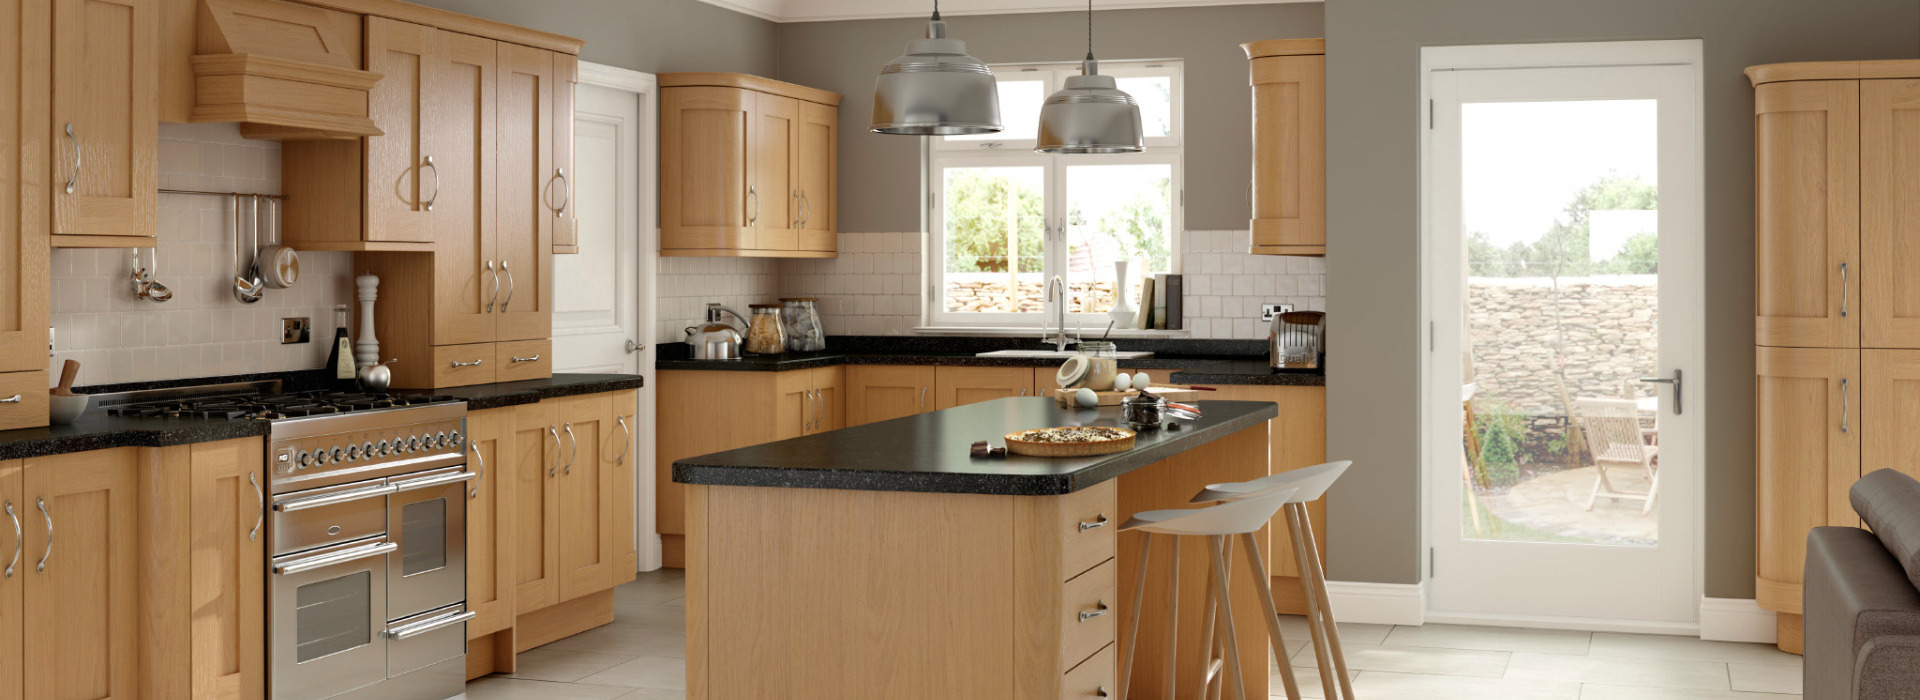 Homechoice Kitchens Ltd | Kitchen Installers Colchester